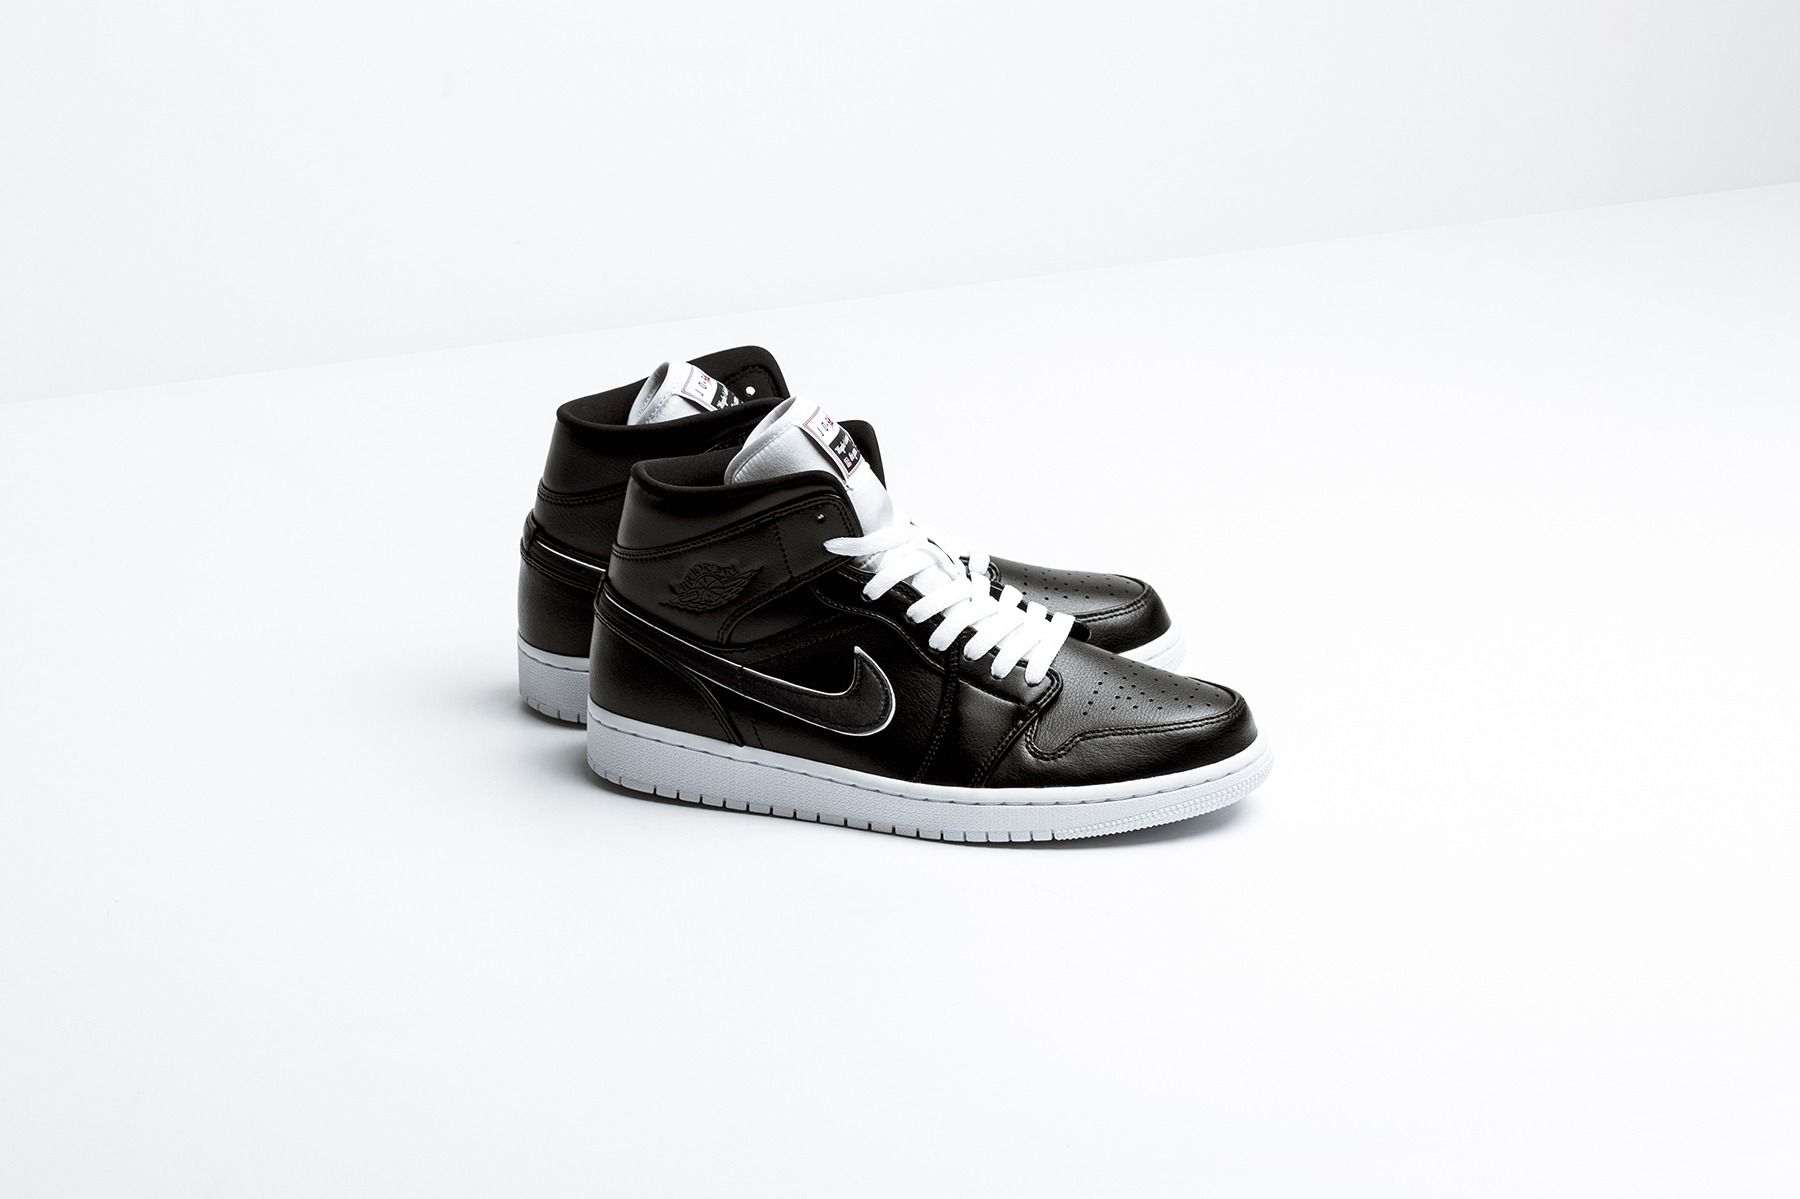 91c058f6b214 Spring 2019 sees the Air Jordan 1 Mid drop in a black and white colorway.  An SE release of the sneaker